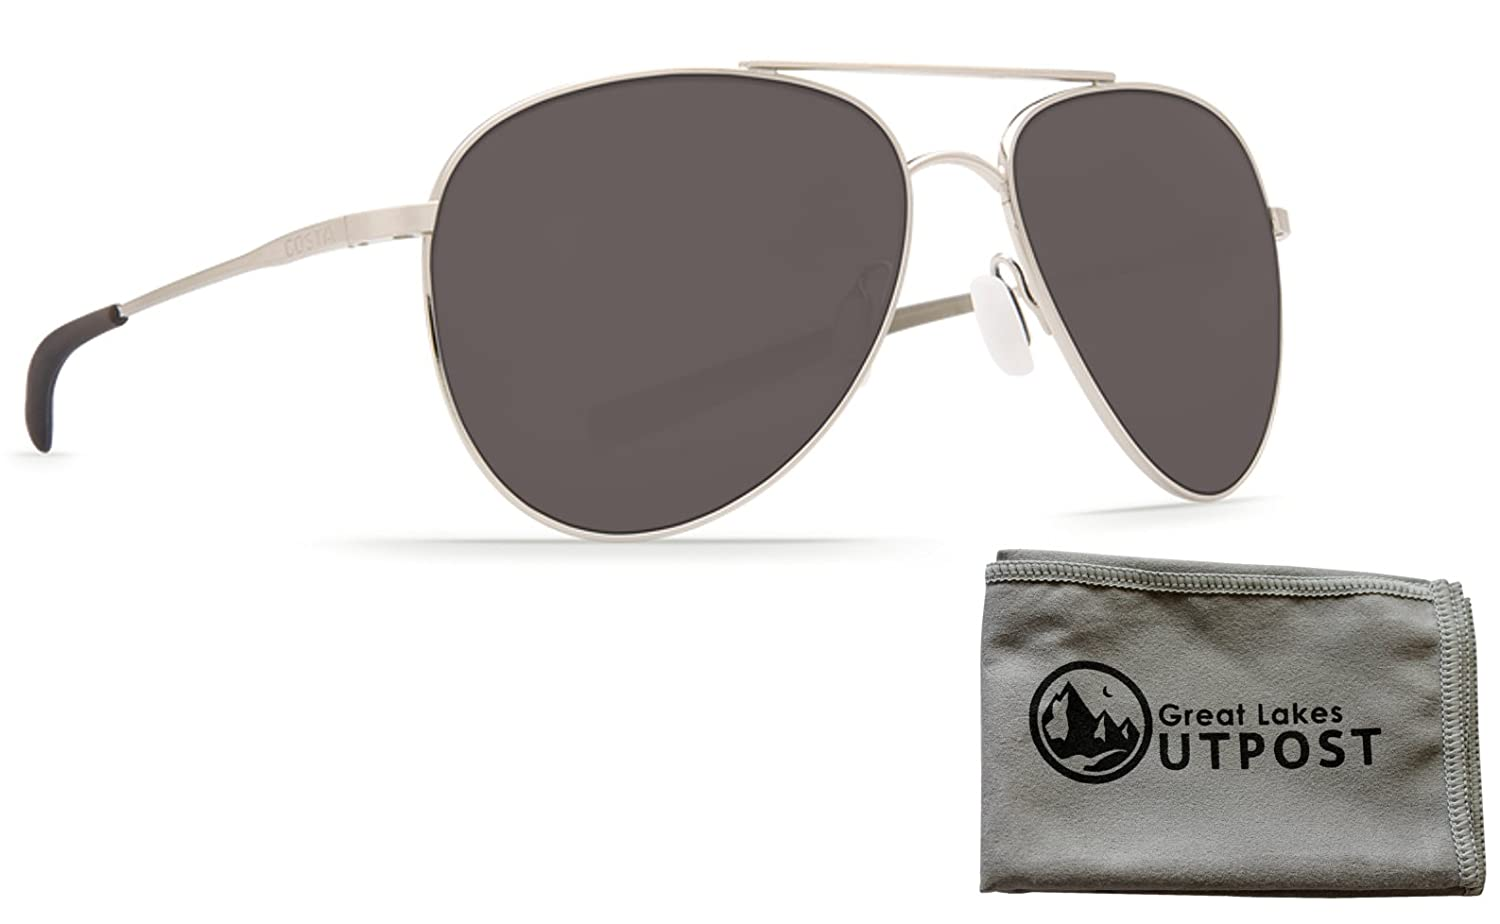 f8f77018144 Amazon.com  Costa del Mar Cook Silver Mirror 580P Brushed Palladium Frame  Sunglasses w Cloth  Clothing